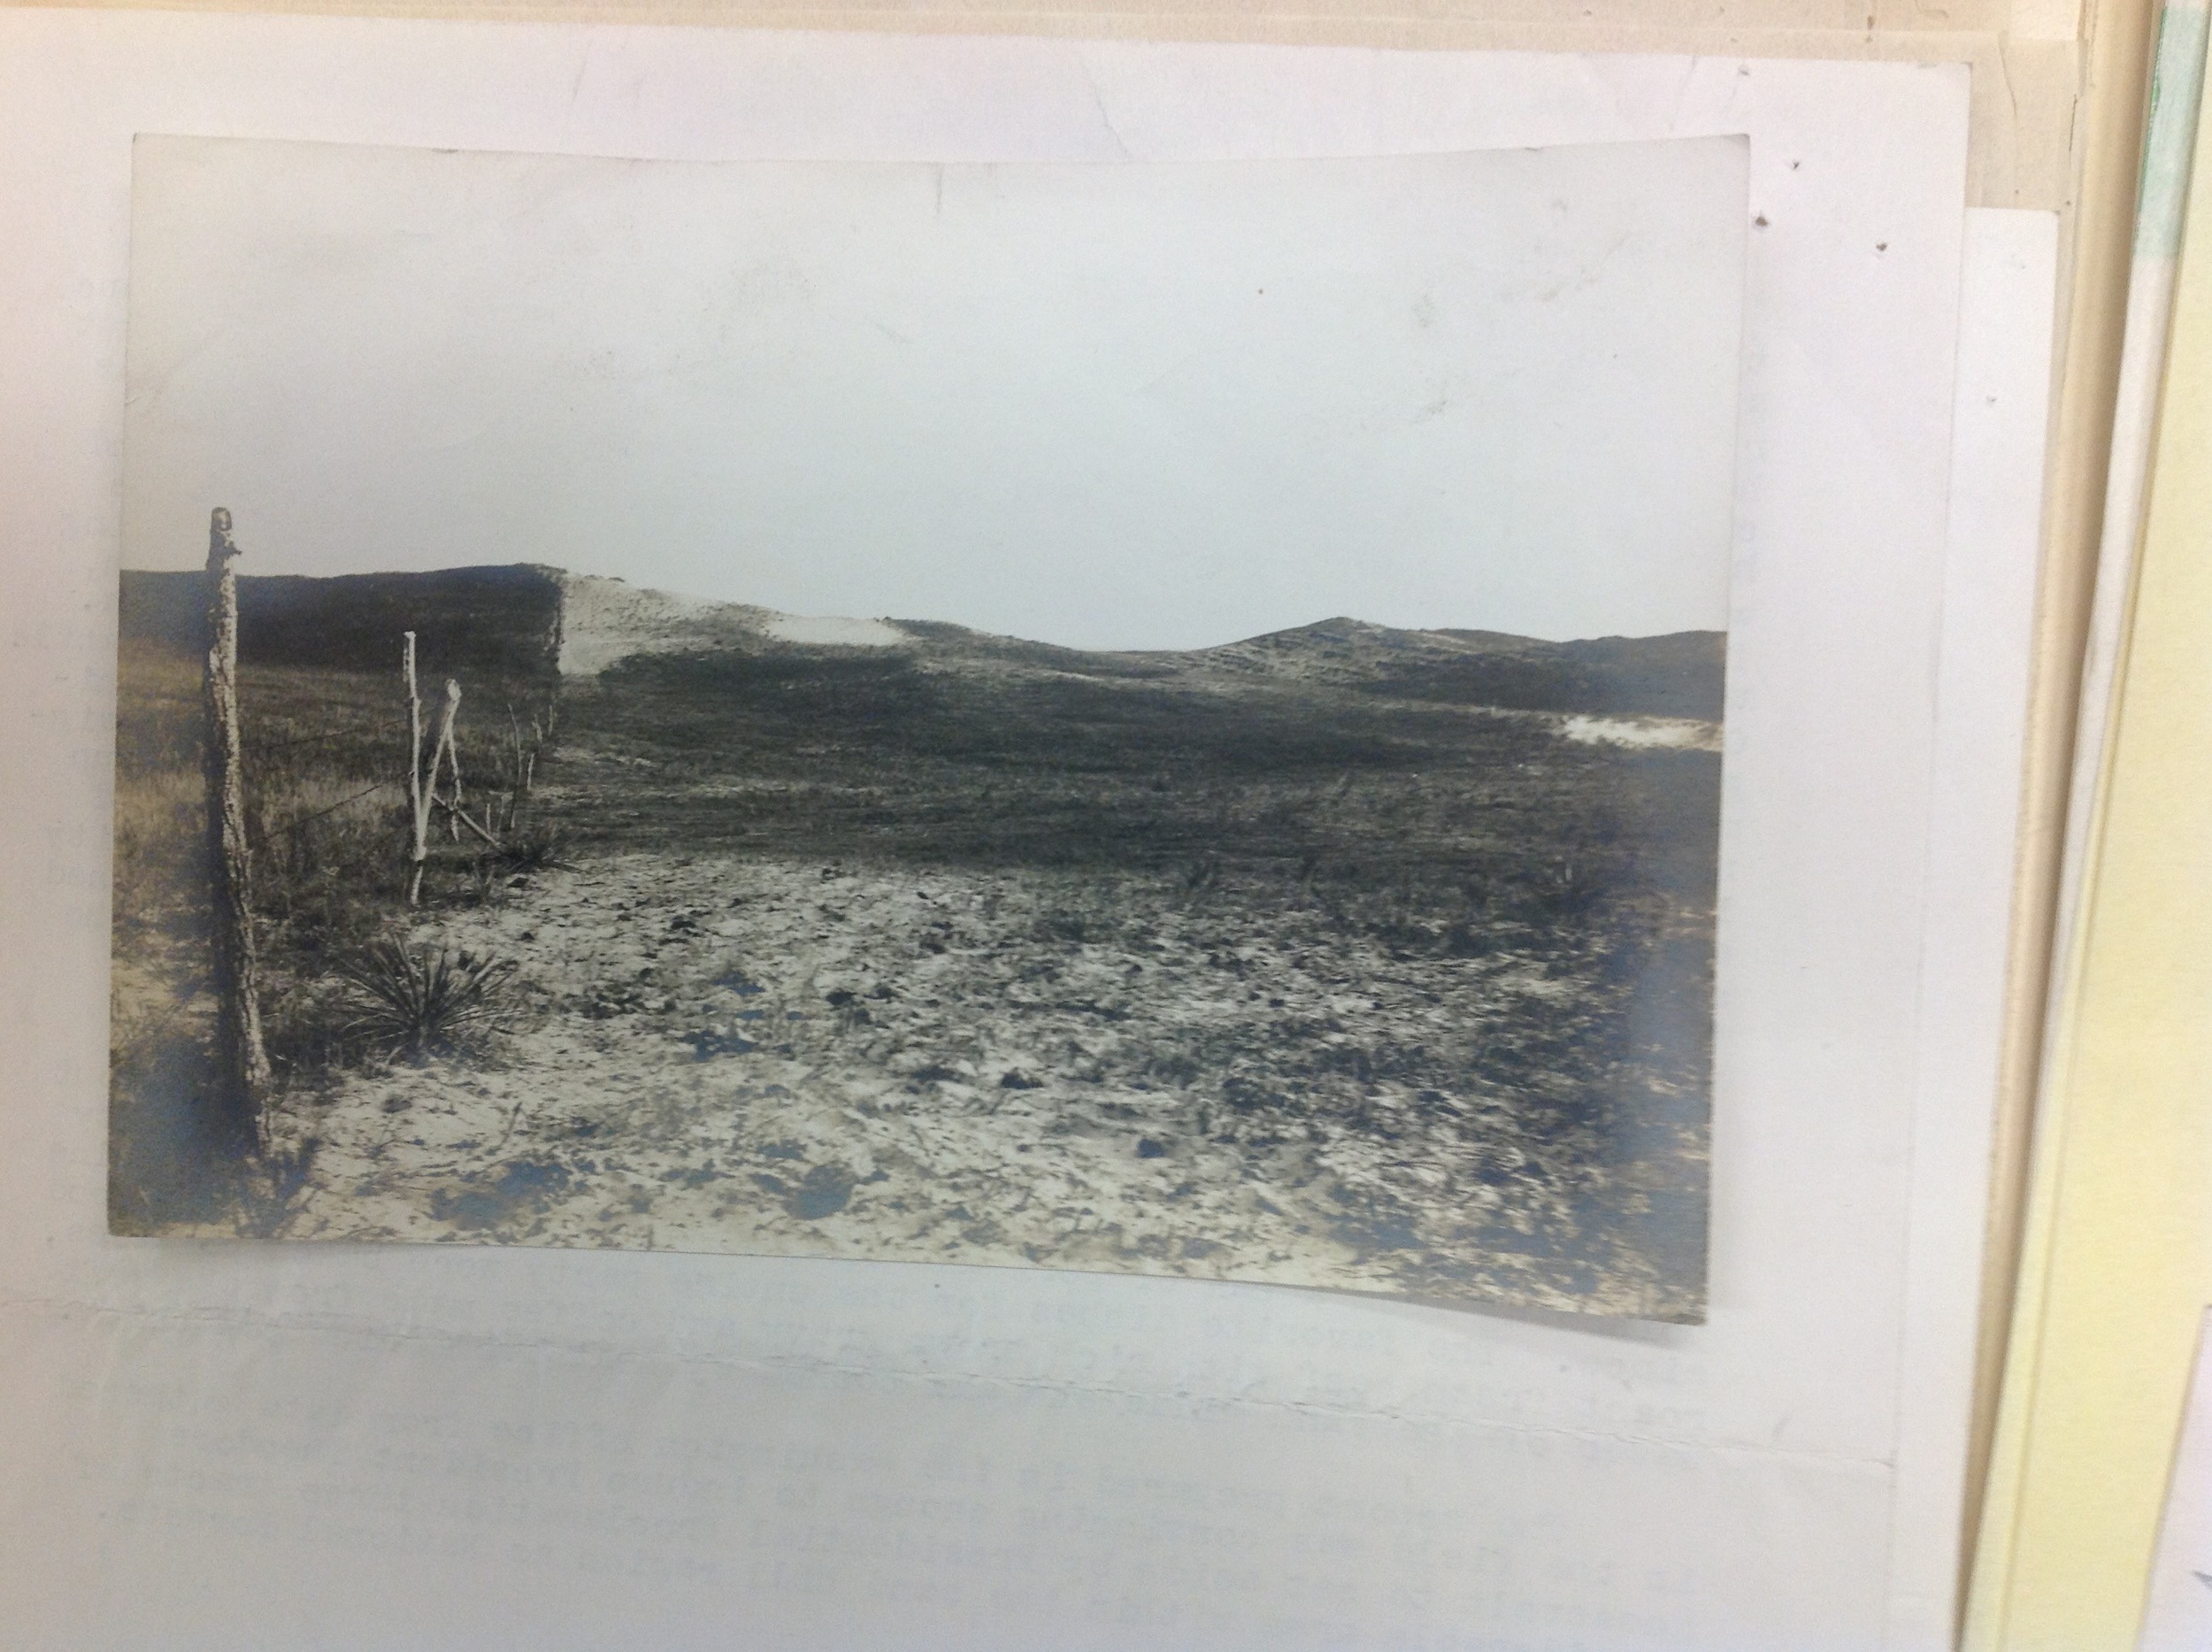 """The condition of the Nebraska Sand Hill Country as we found it in 1901. Over grazing the range was a concern at that time. Charles A. Scott.""  From the narrative of Charles A. Scott. Old Timers Collection. Gifford Pinchot Collection. Library of Congress. Manuscript Division."